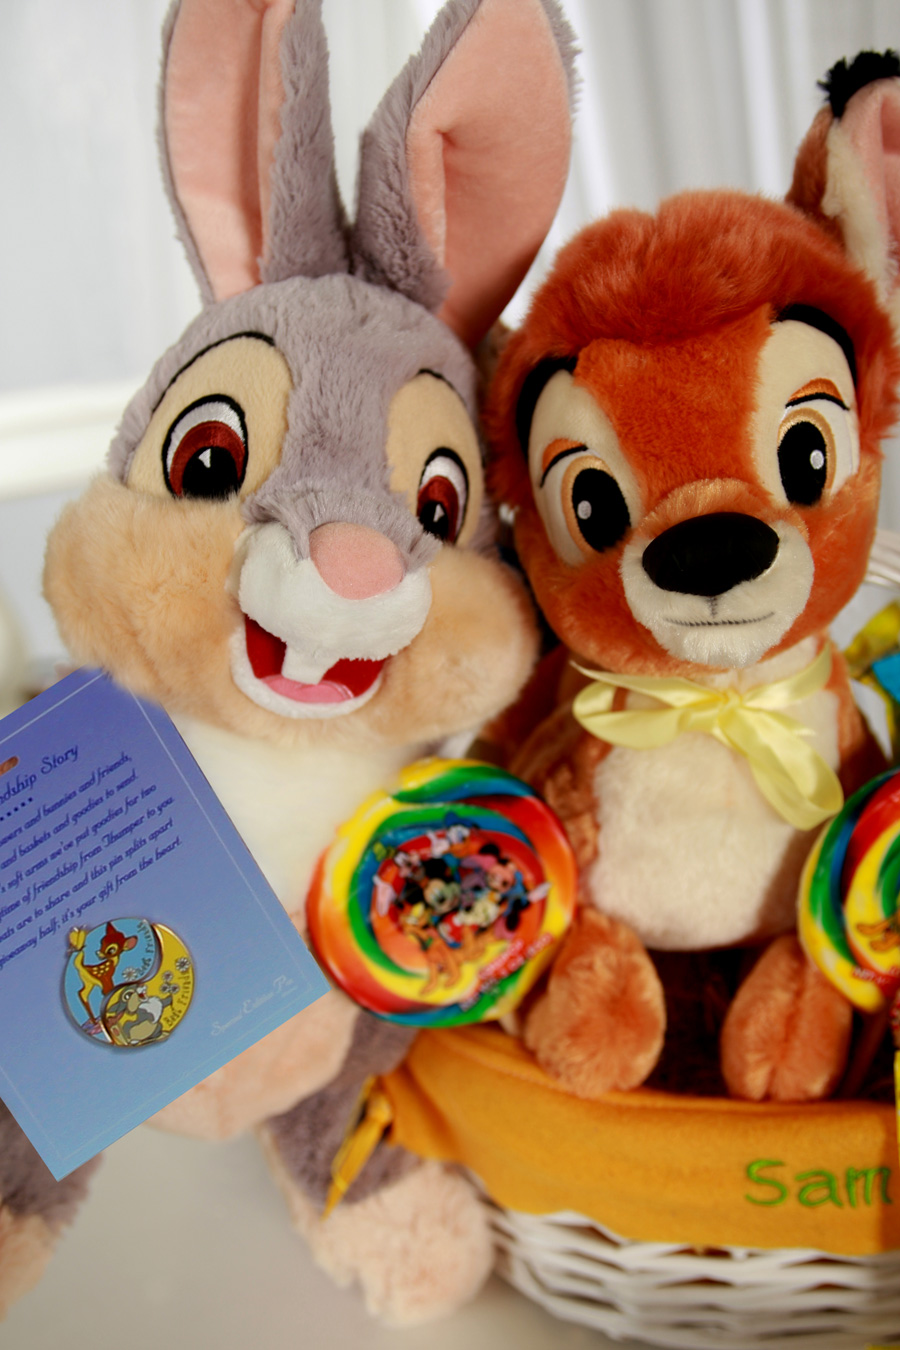 A disney easter basket that teaches sharing and friendship disney bff basket from disney floral gifts featuring thumper and bambi negle Gallery